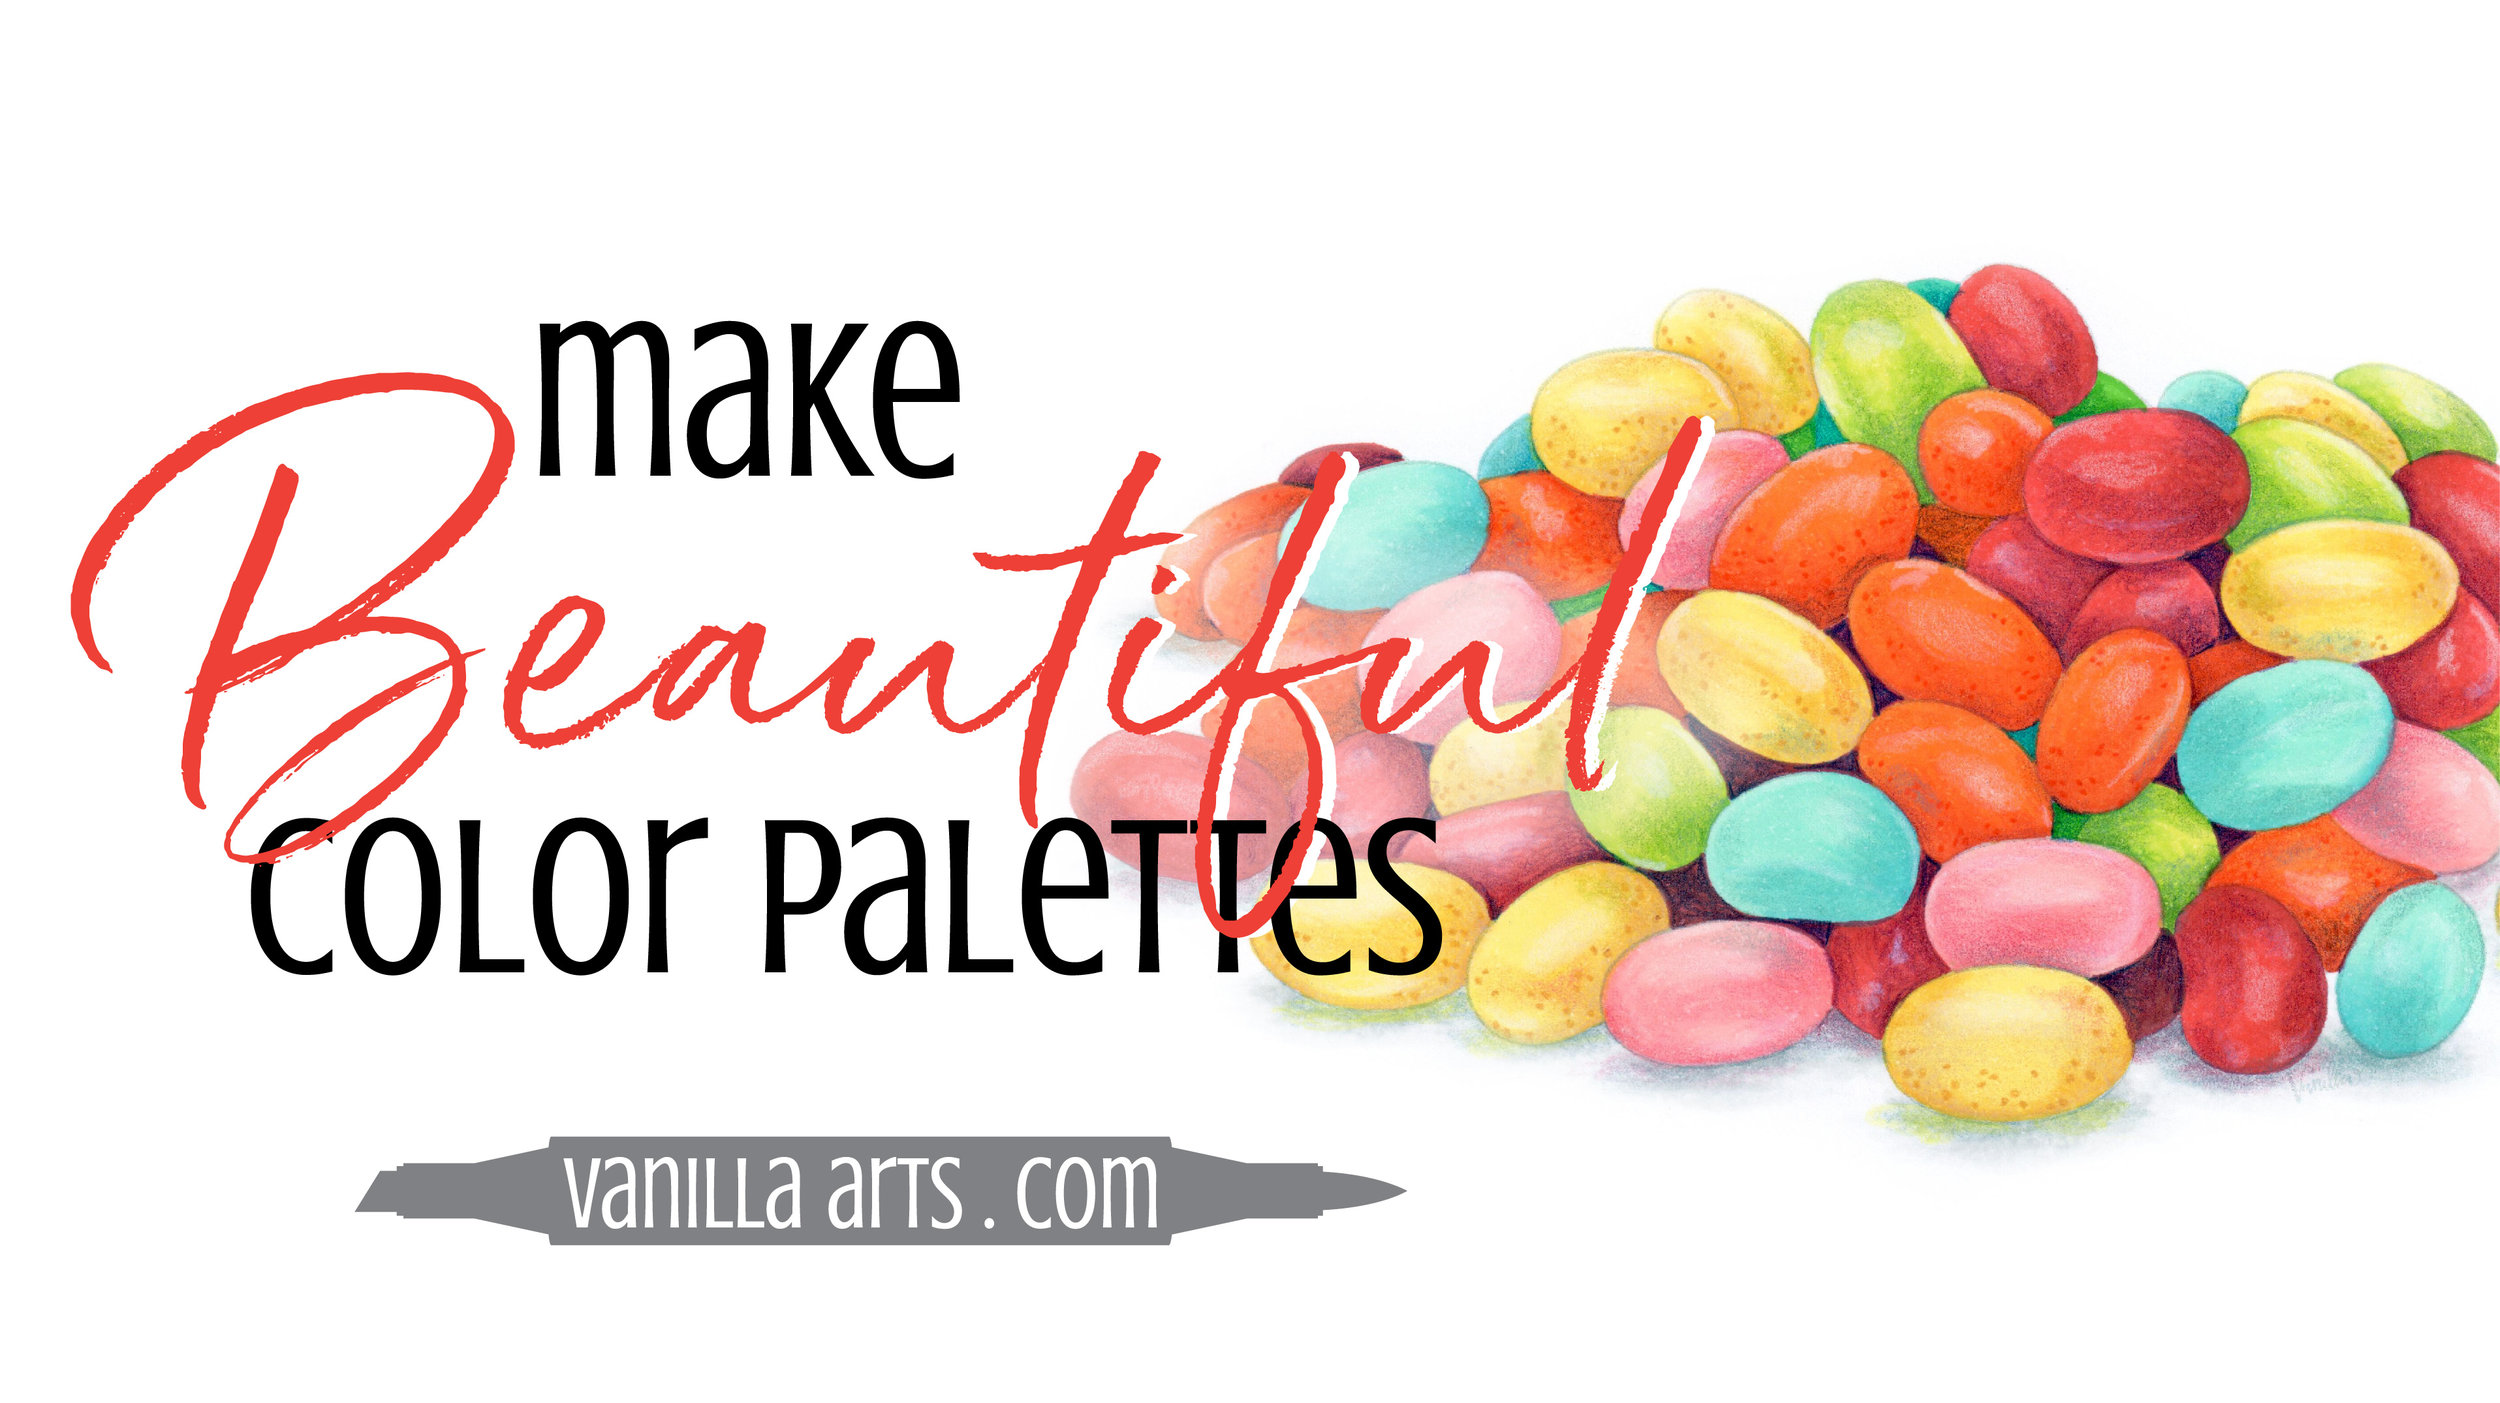 Create Professional Looking Color Palettes